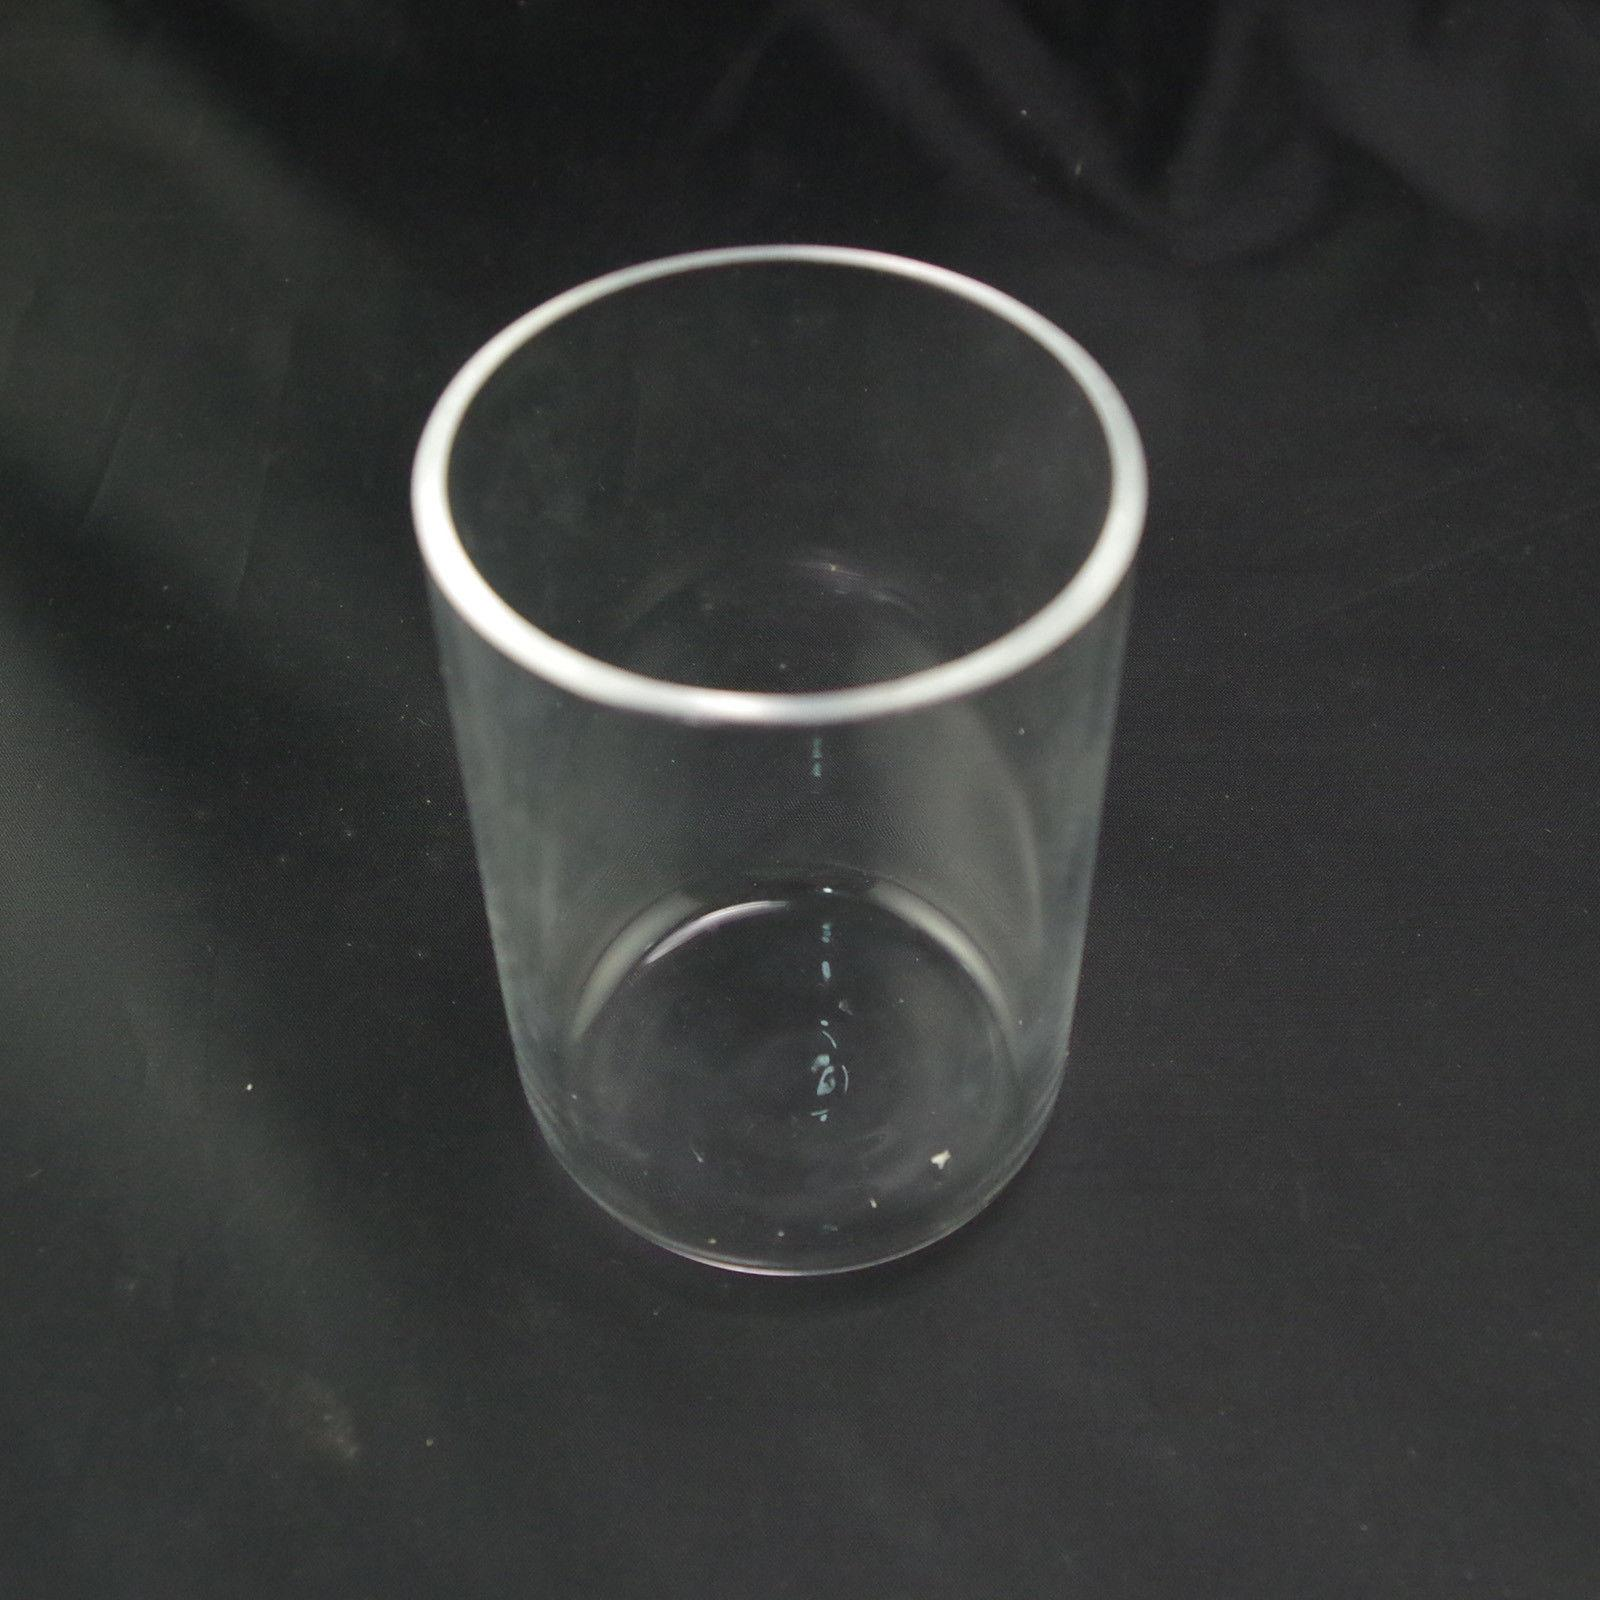 100ml Quartz Crucible 99.9% SiO2 Silica Crucible 2mm Thickness Melting Point: 1750 Degree C